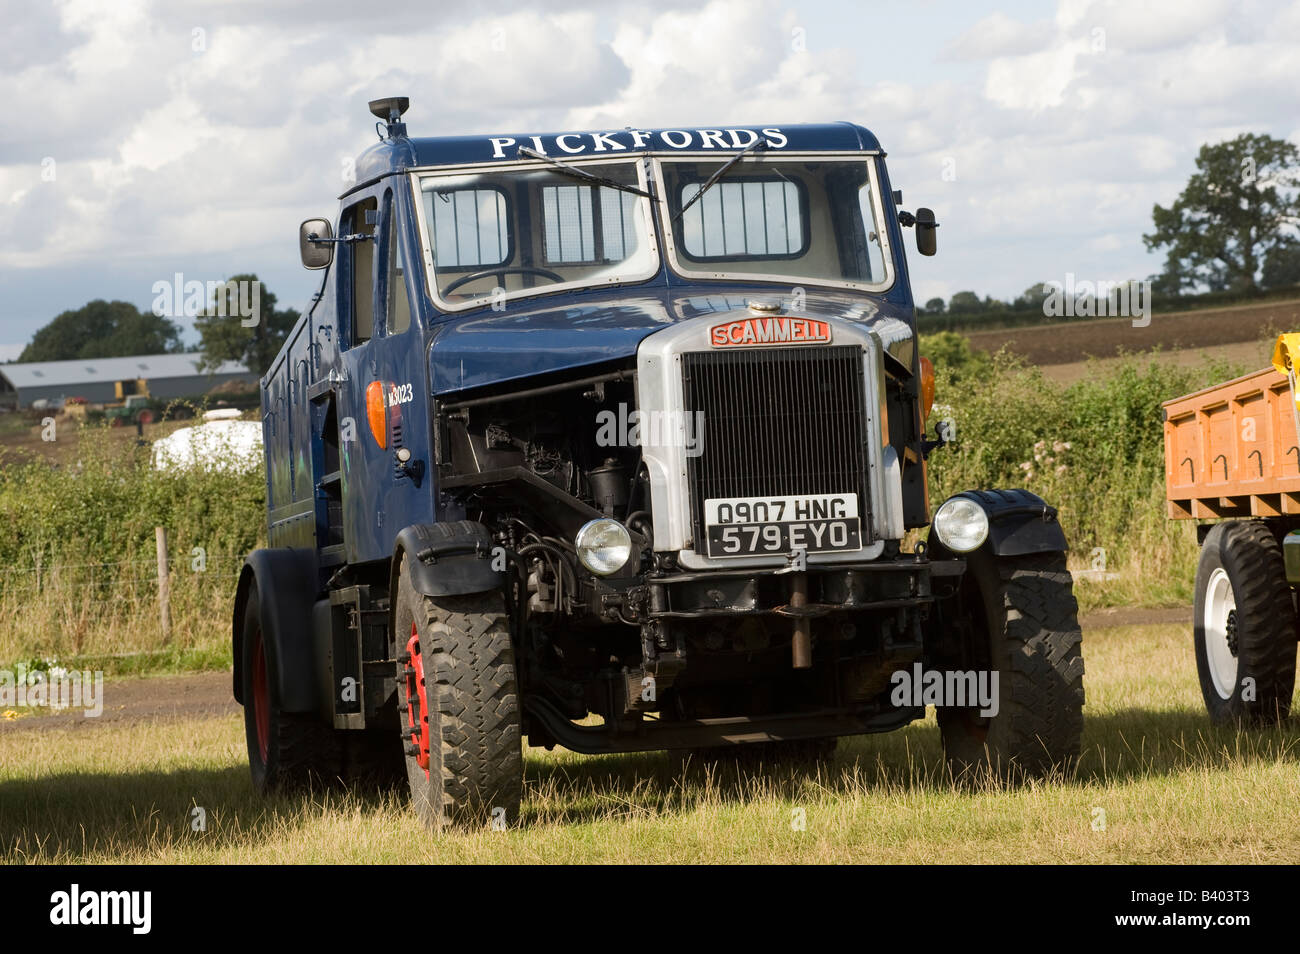 Vintage scammell truck in pickfords livery at an enthusiasts fair in the uk - Stock Image